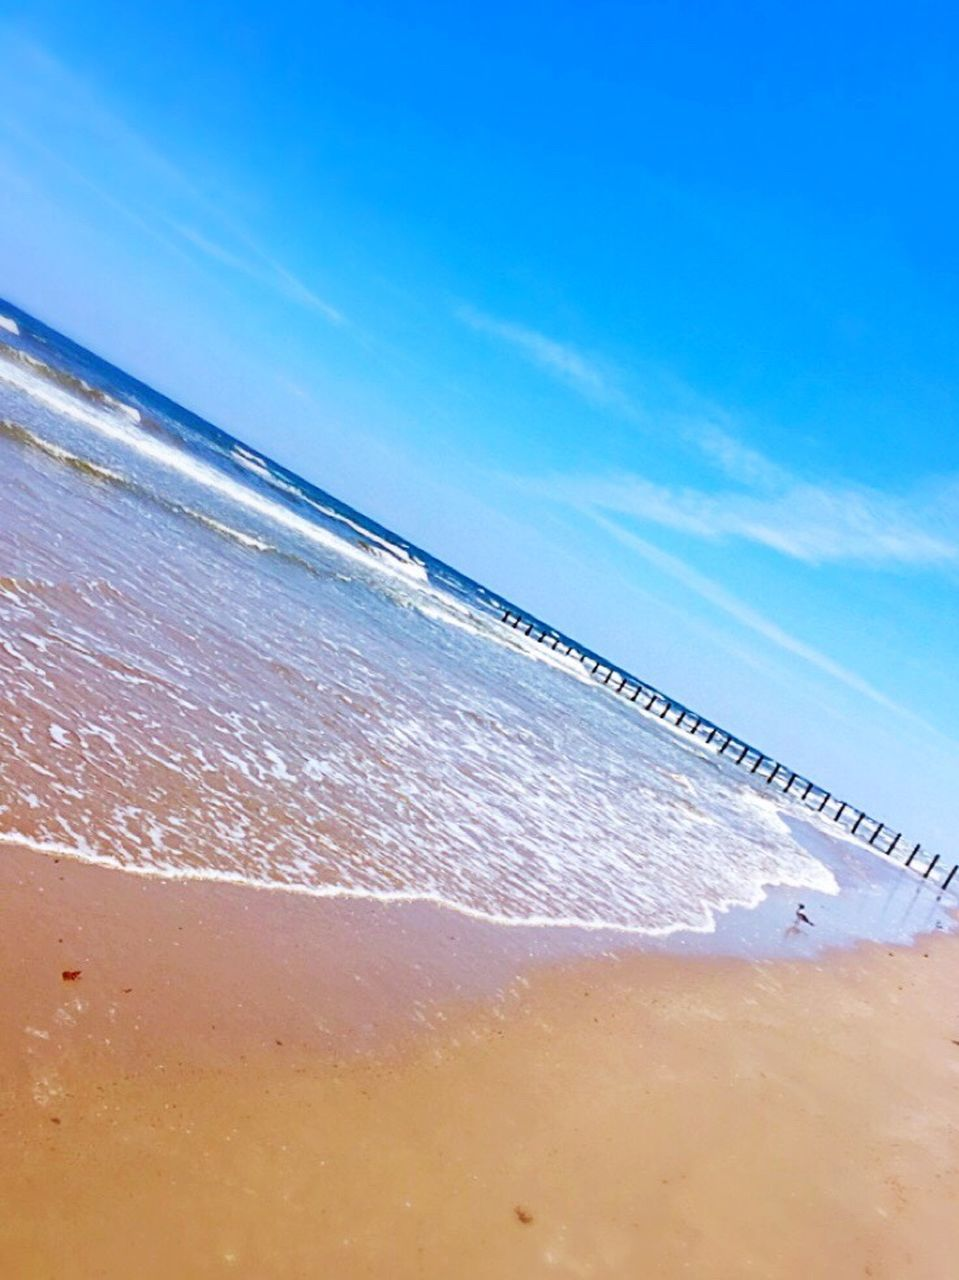 beach, sea, water, sand, nature, beauty in nature, shore, scenics, tranquil scene, outdoors, no people, tranquility, day, horizon over water, blue, wave, sky